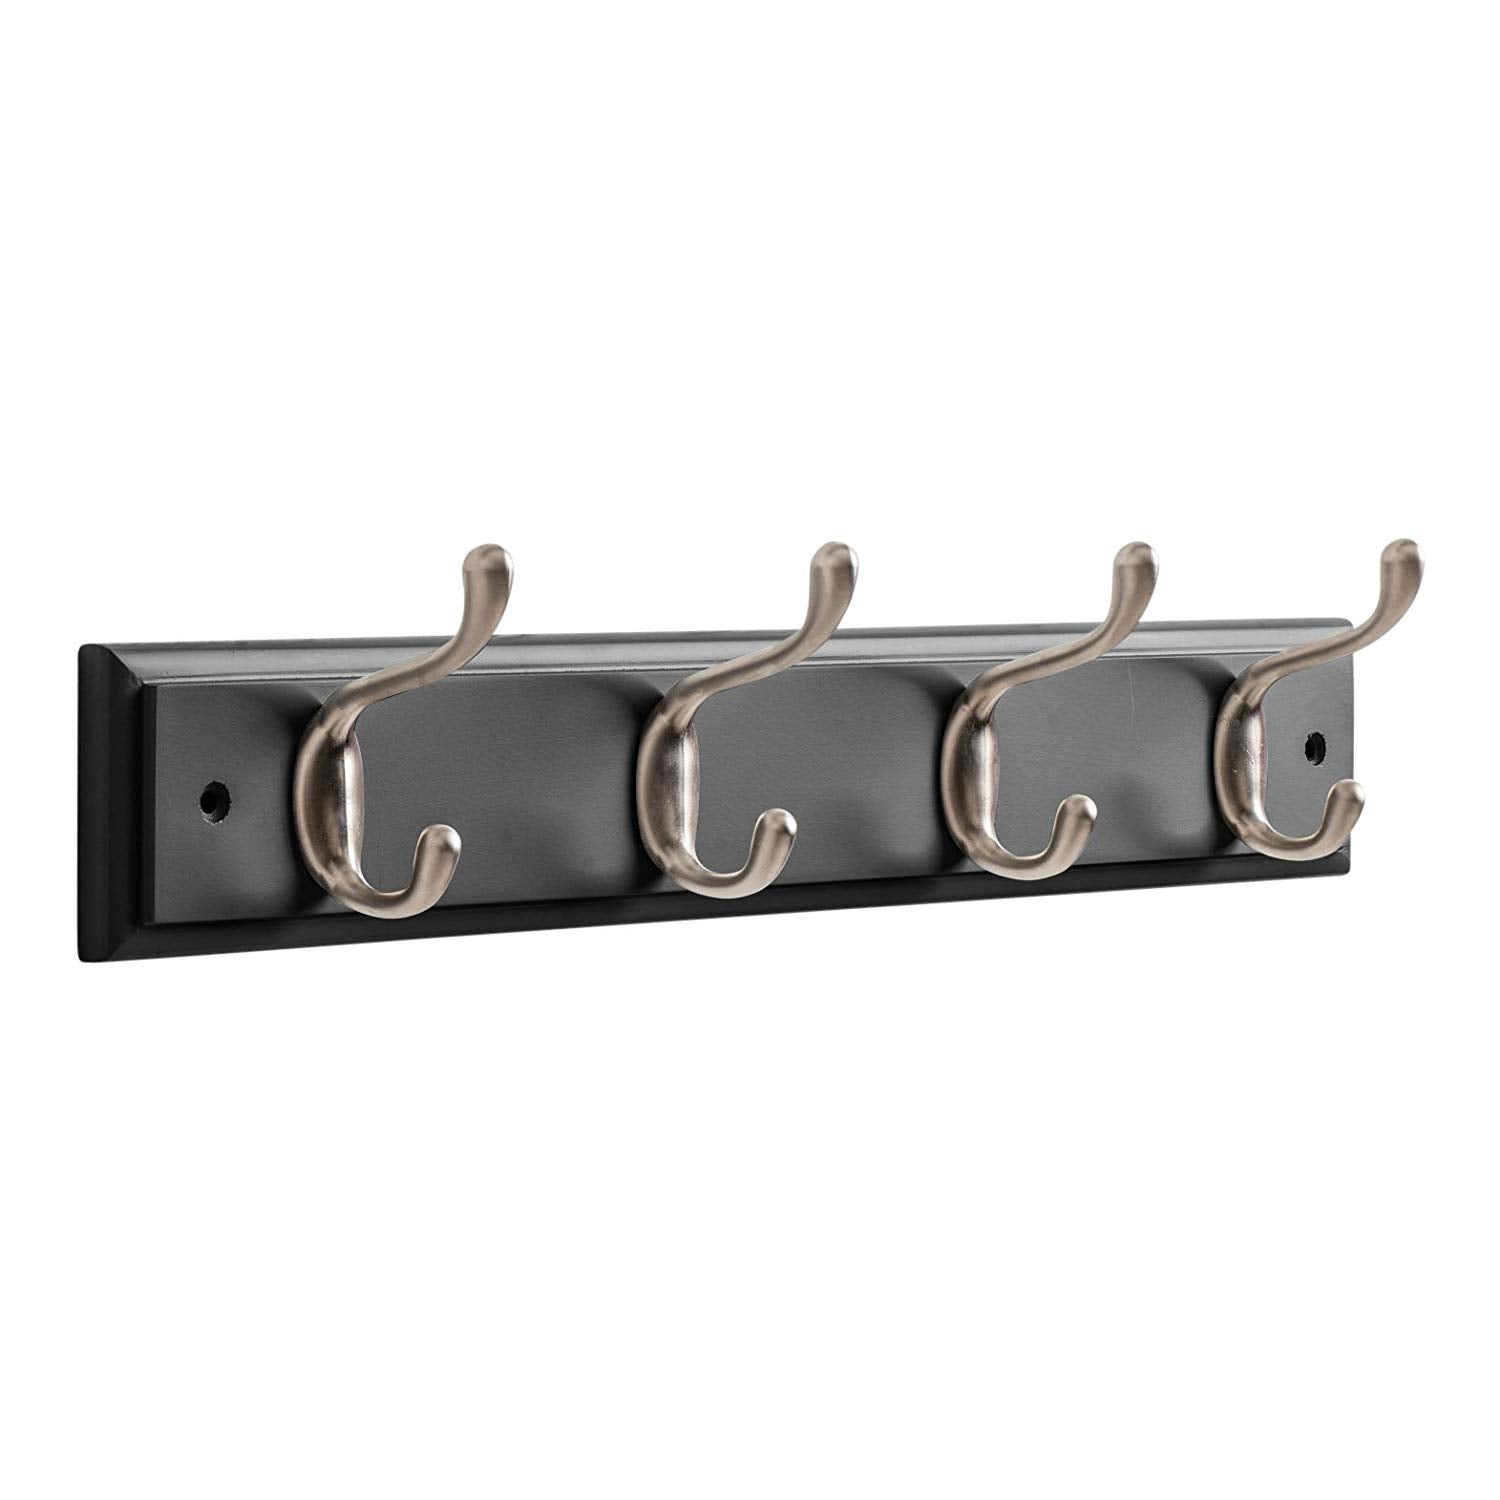 "OCCO Resko H5.5"" x W17.7"" x D2.75"" / H14cm x W45cm x D7cm Coat Rack Wall Mounted With Coat Hooks I Strong Wall Hooks Heavy Duty I 4 Brushed Nickel Coat Hook On Black Board I Wall Hooks Decorative"